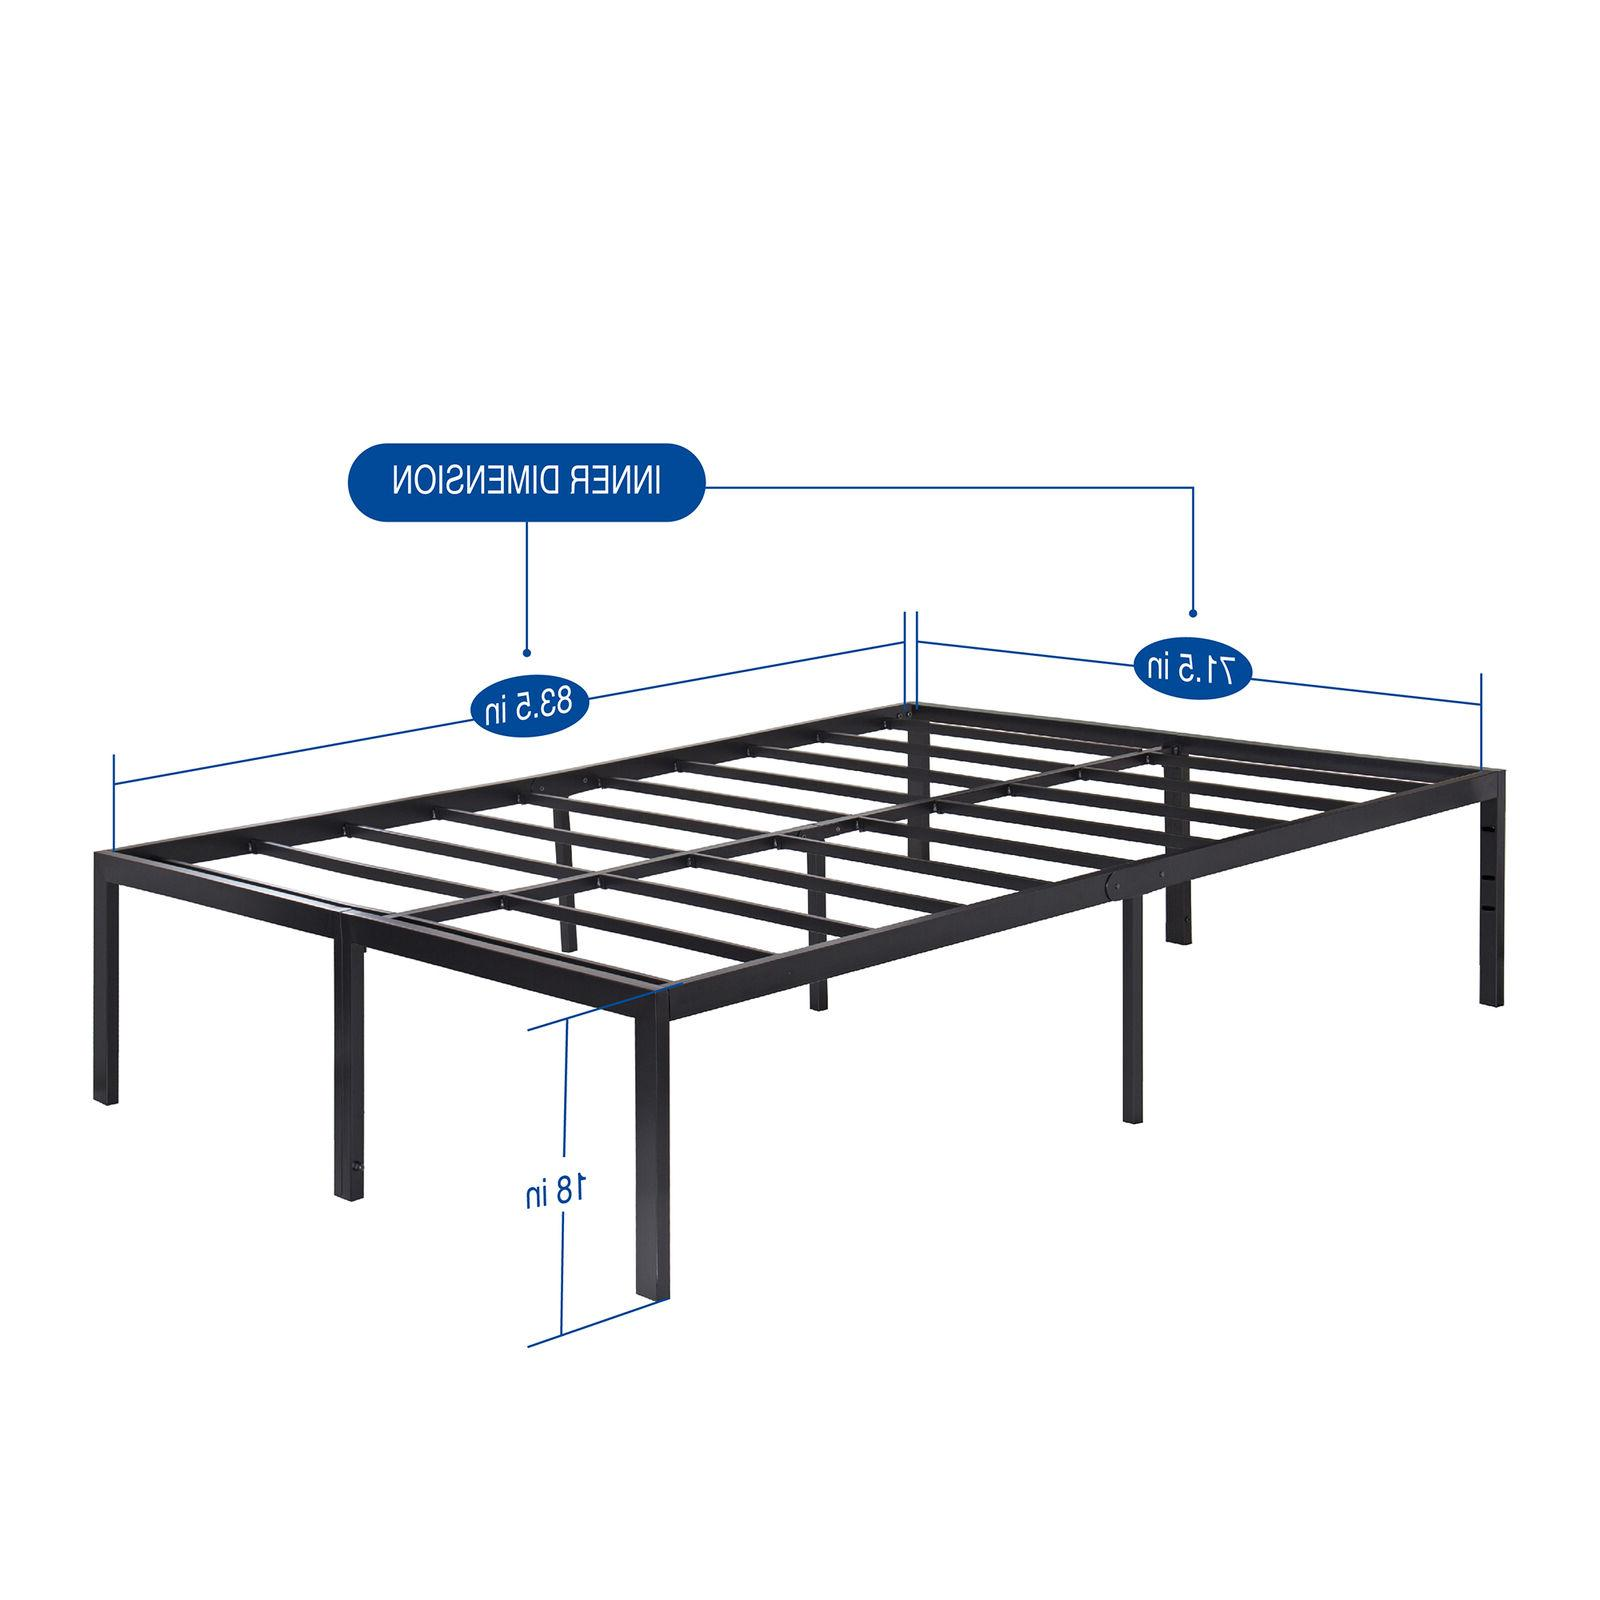 18'' Metal Bed Support King